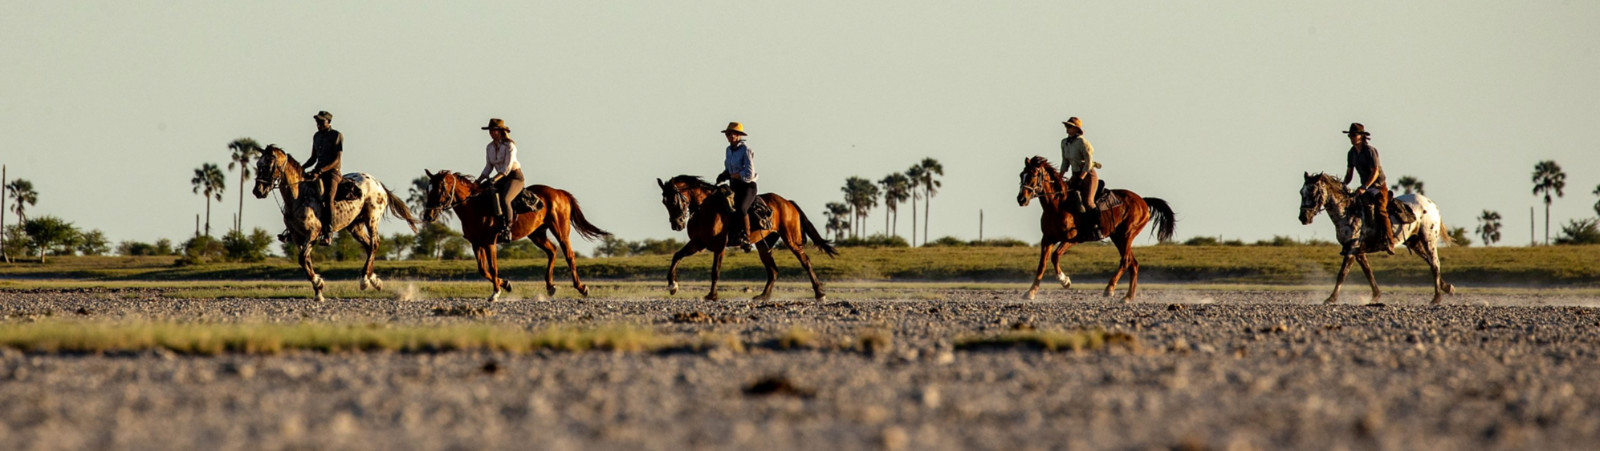 Why is a Horse Safari the Next Big Thing?